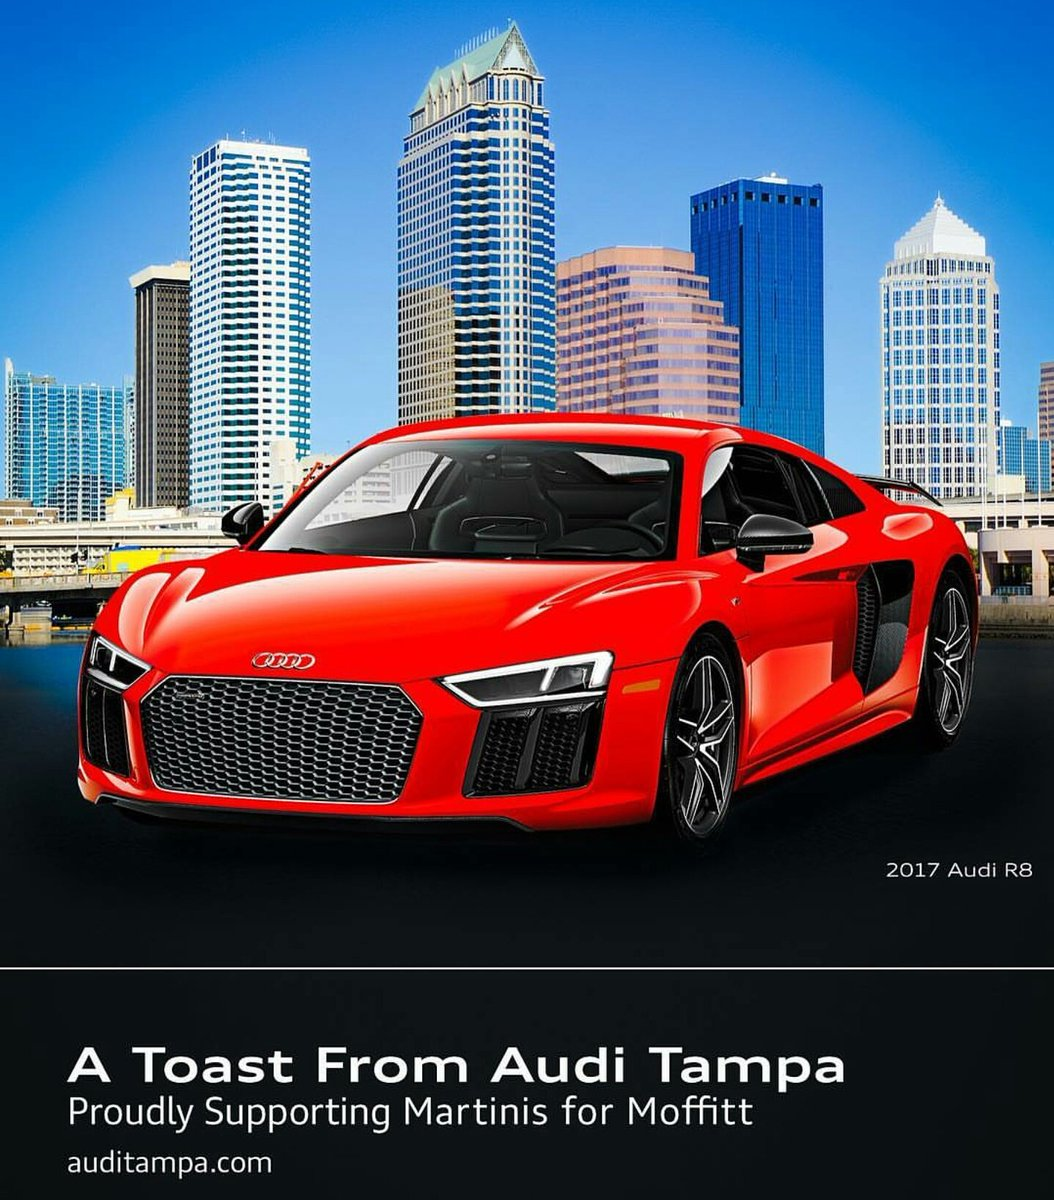 Audi Tampa On Twitter Audi Tampa Is Proud To Support Tonights - Audi tampa